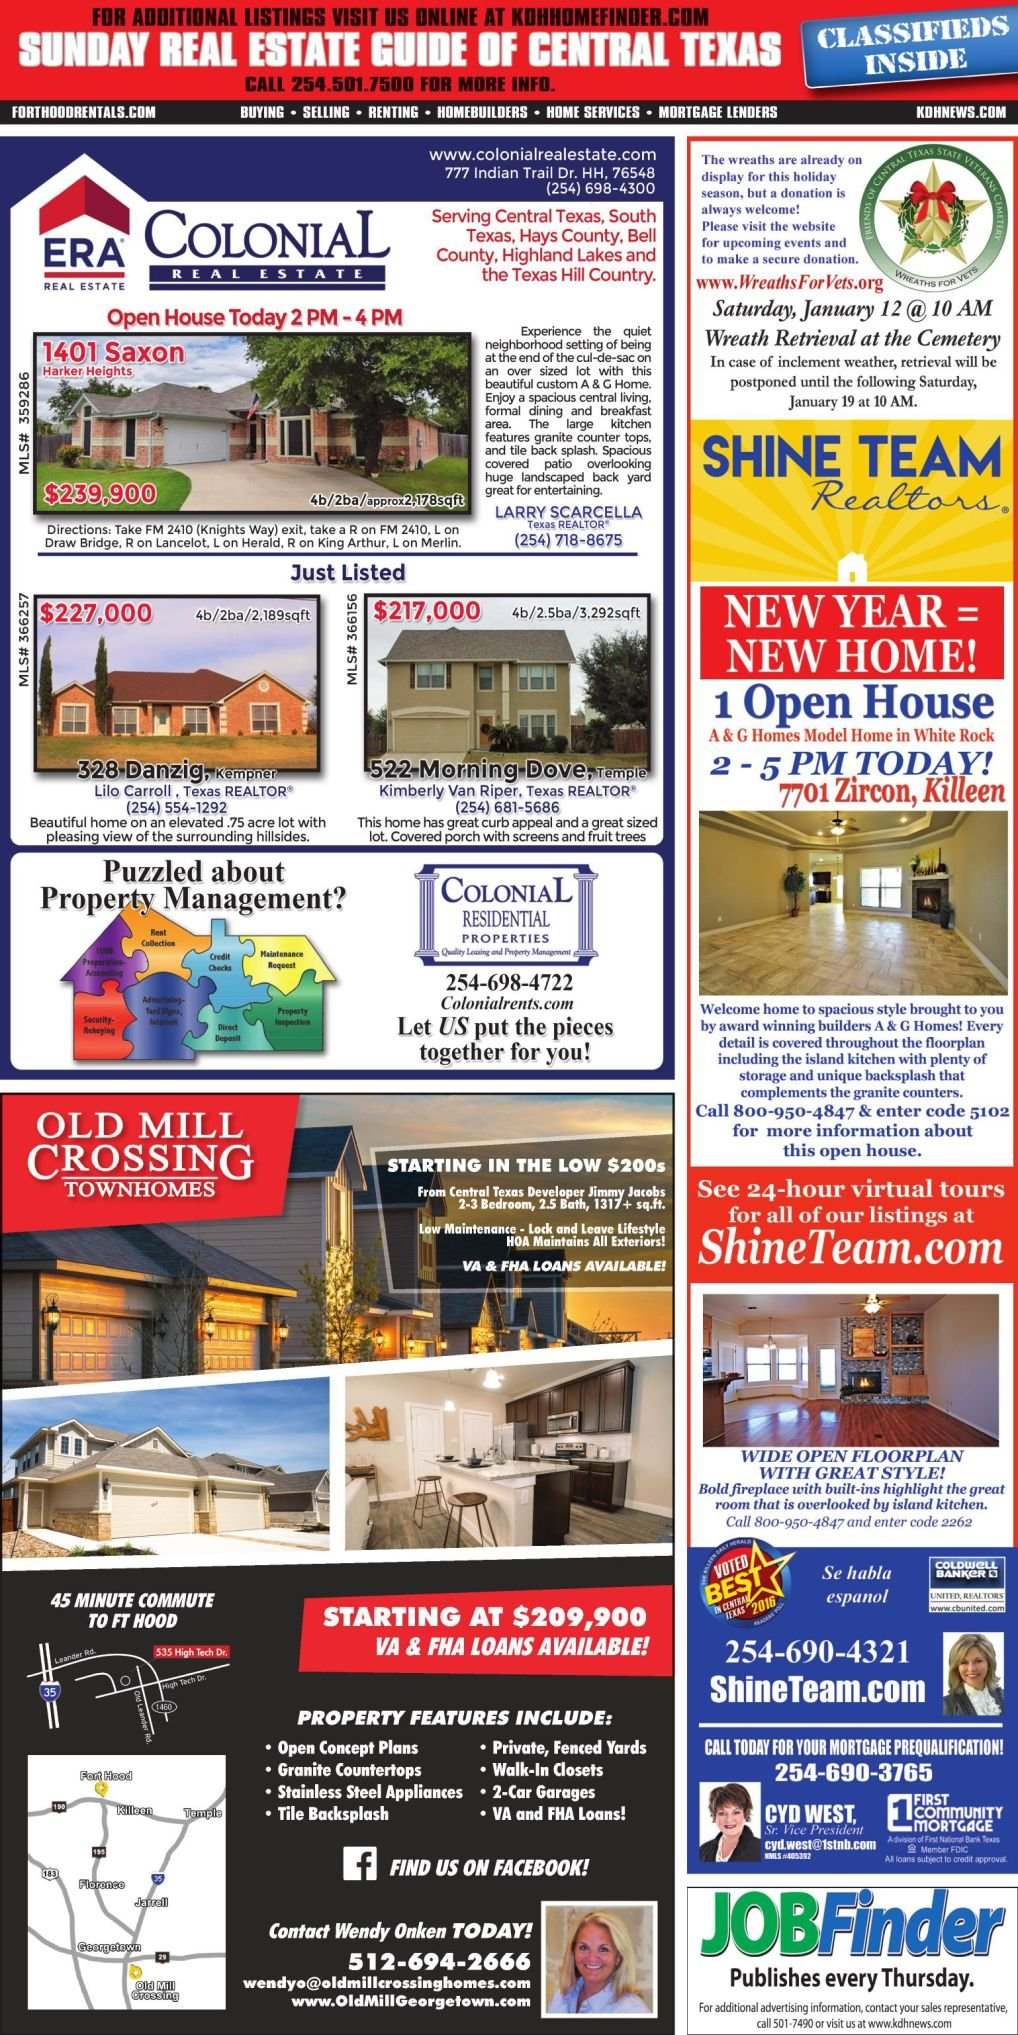 Sunday Real Estate Guide Jan. 6th